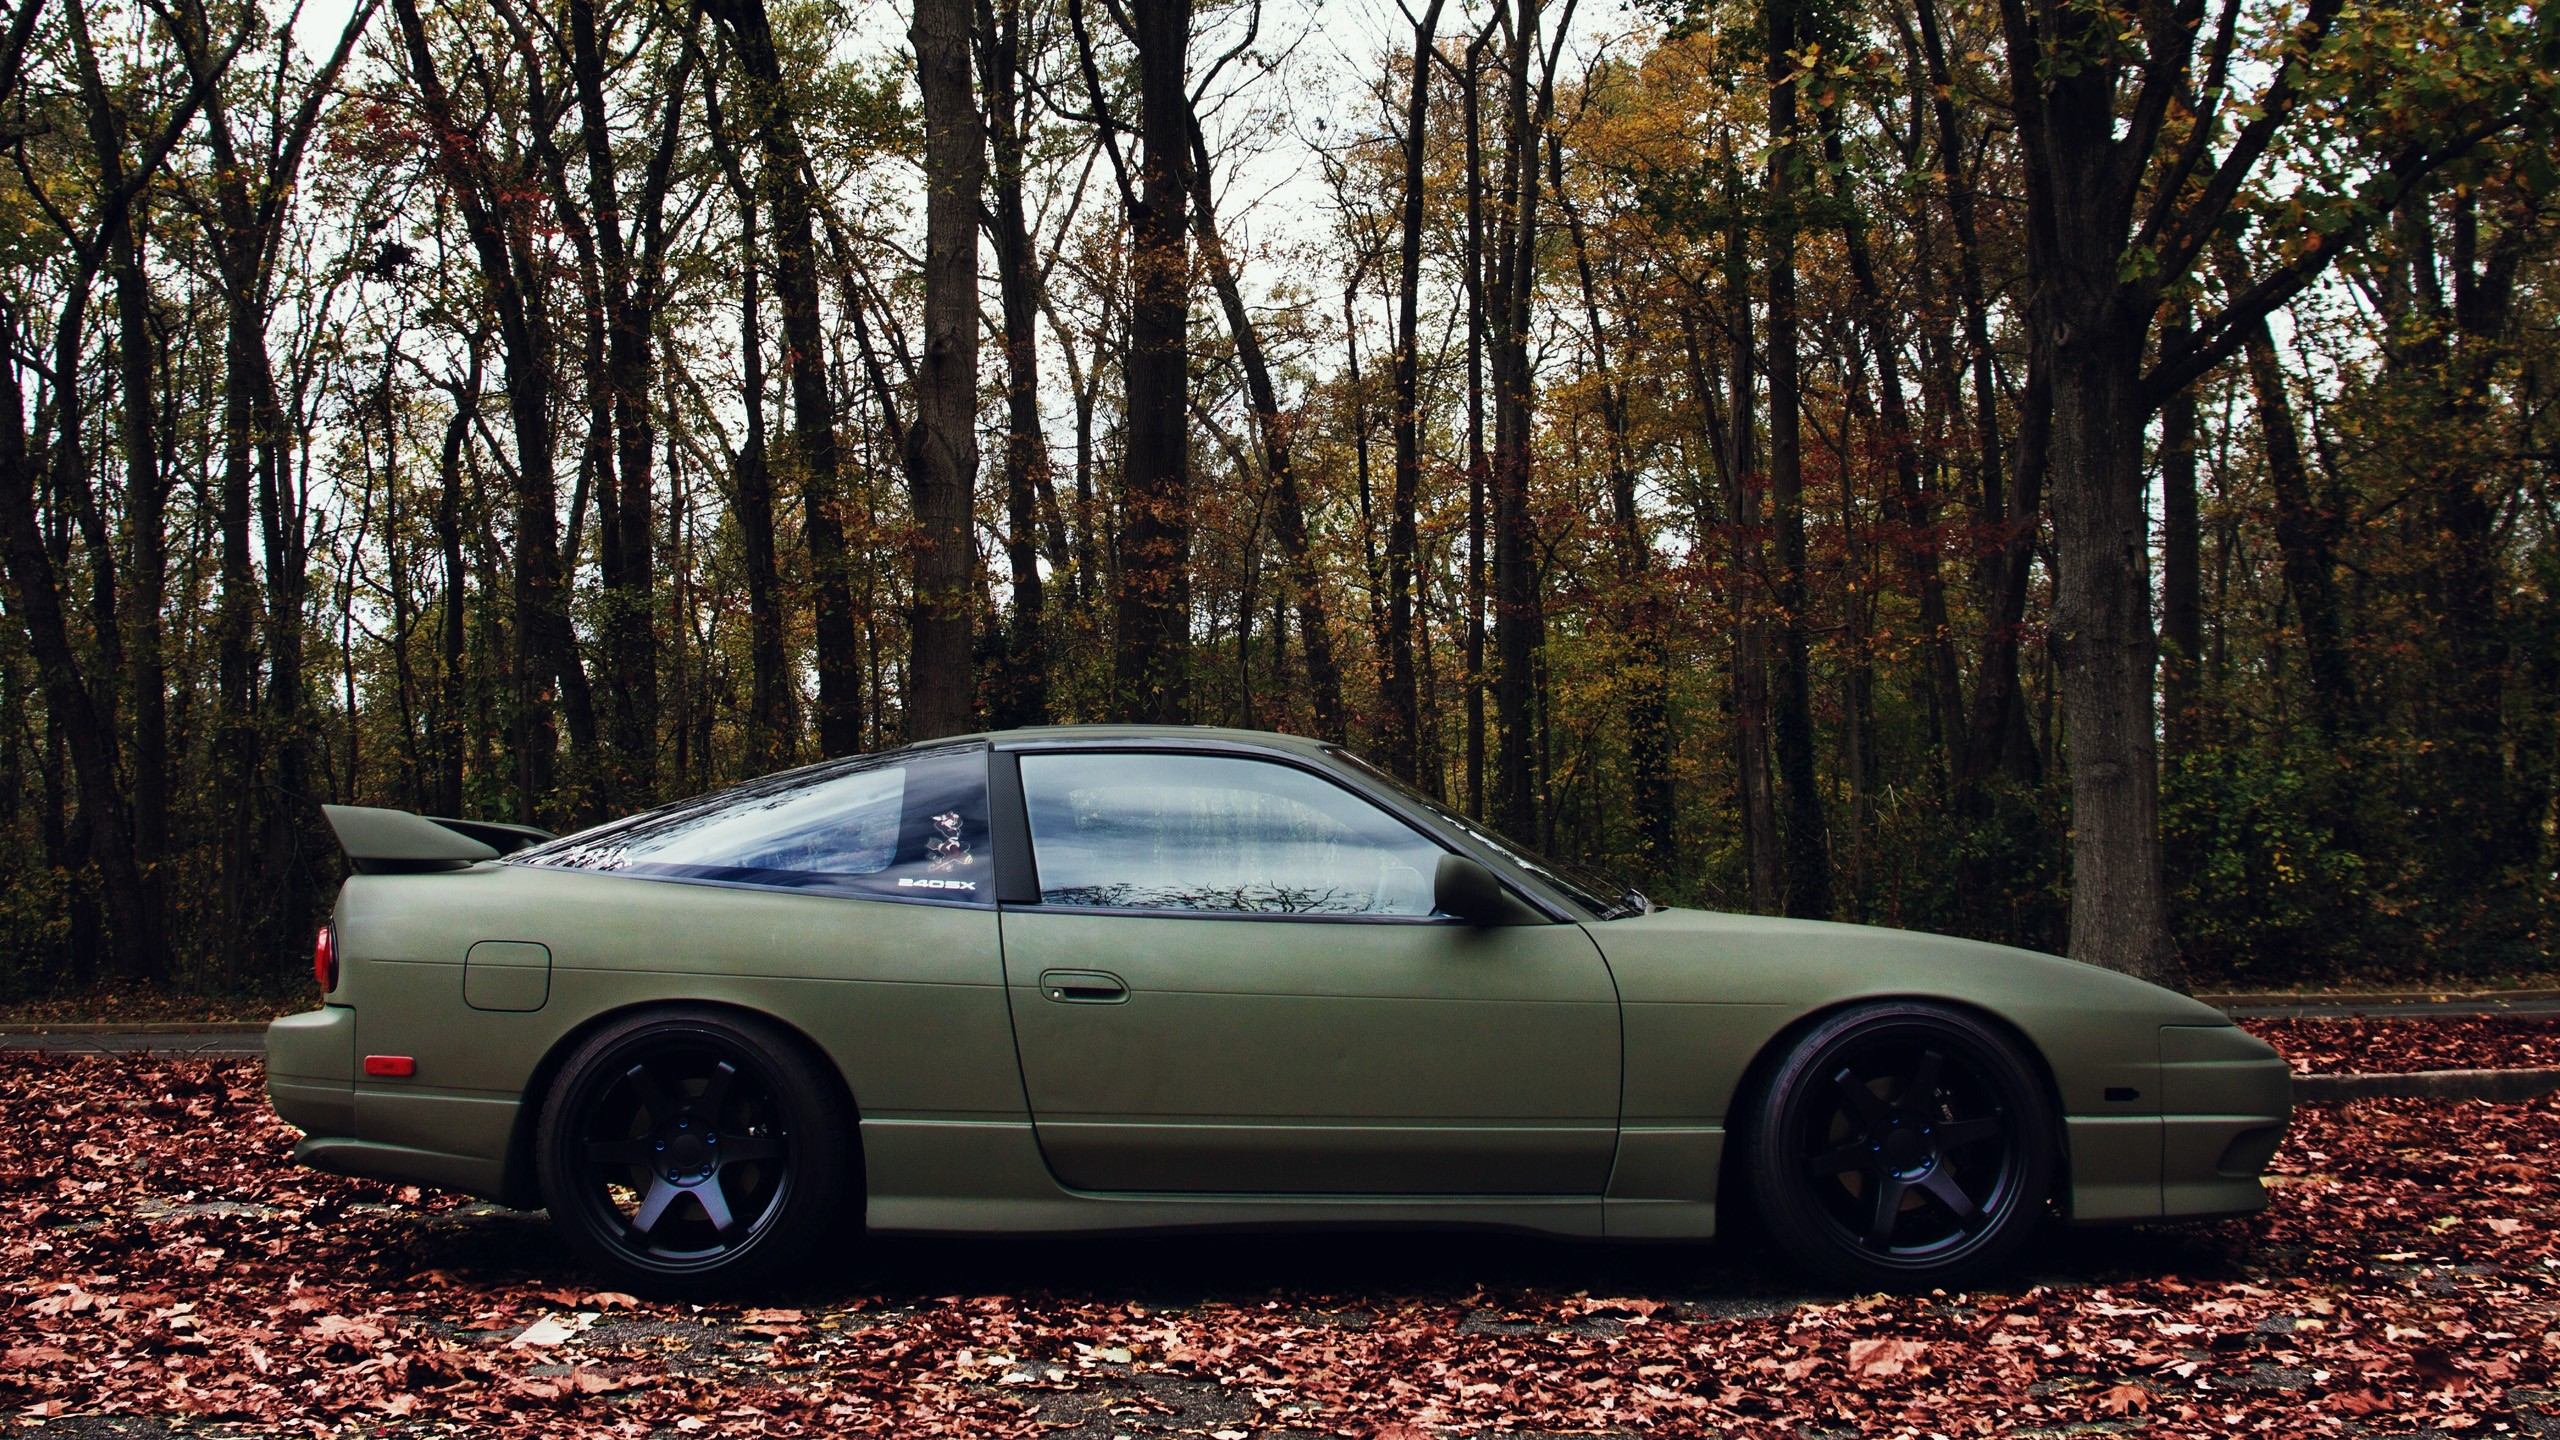 Nissan 180sx Car Jdm Wallpapers Hd Desktop And Mobile Backgrounds